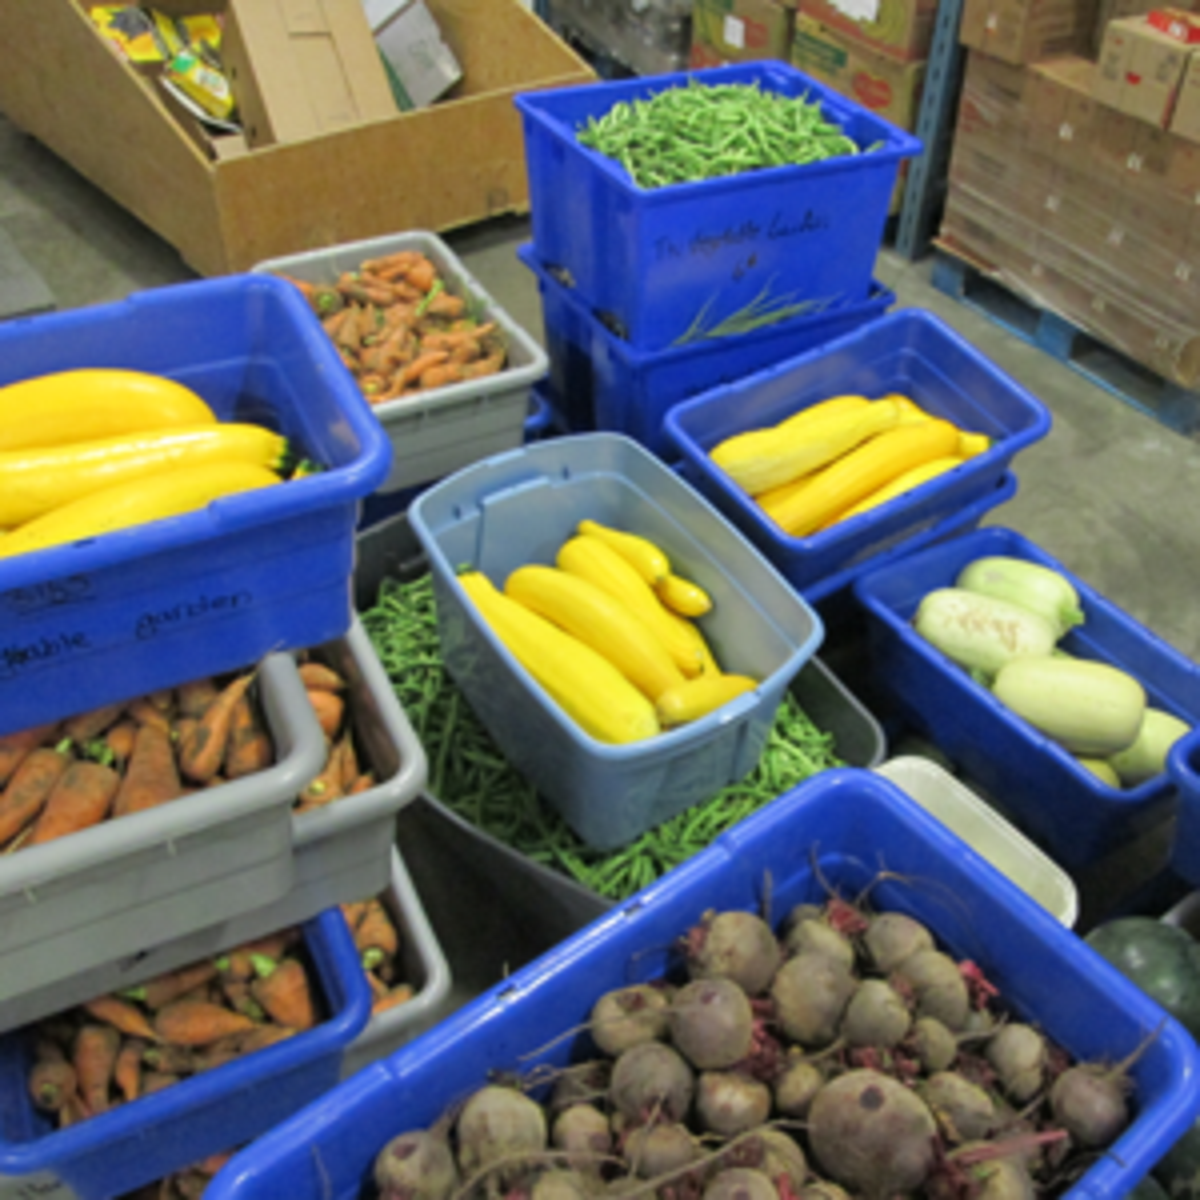 Produce ready for the food banks